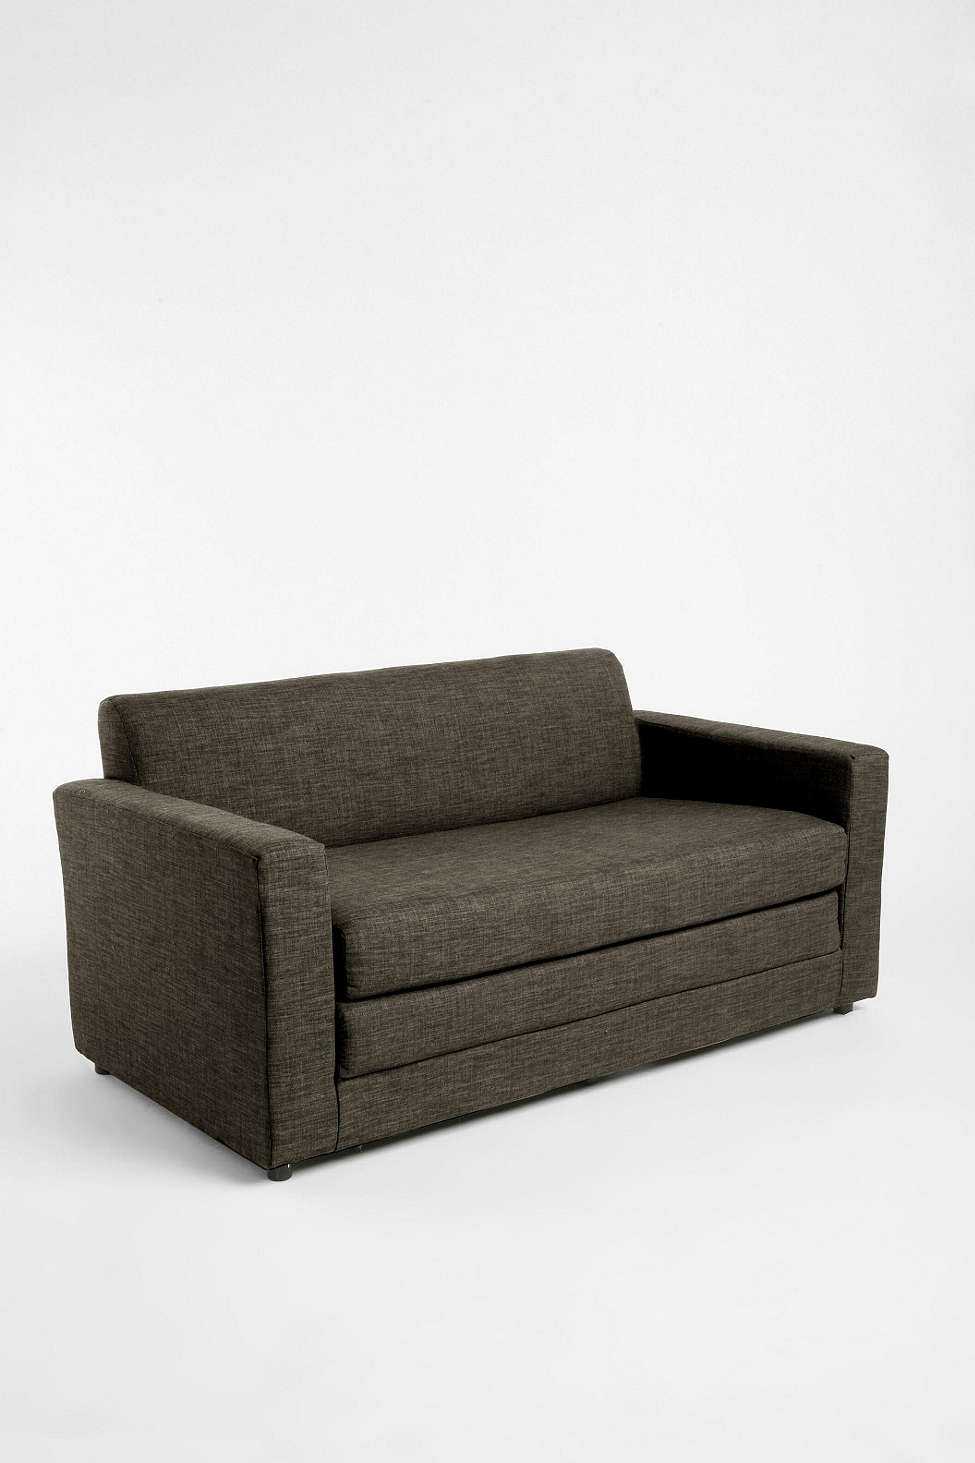 Exceptionnel Anywhere Convertible Sofa $399. 25798620_003_b